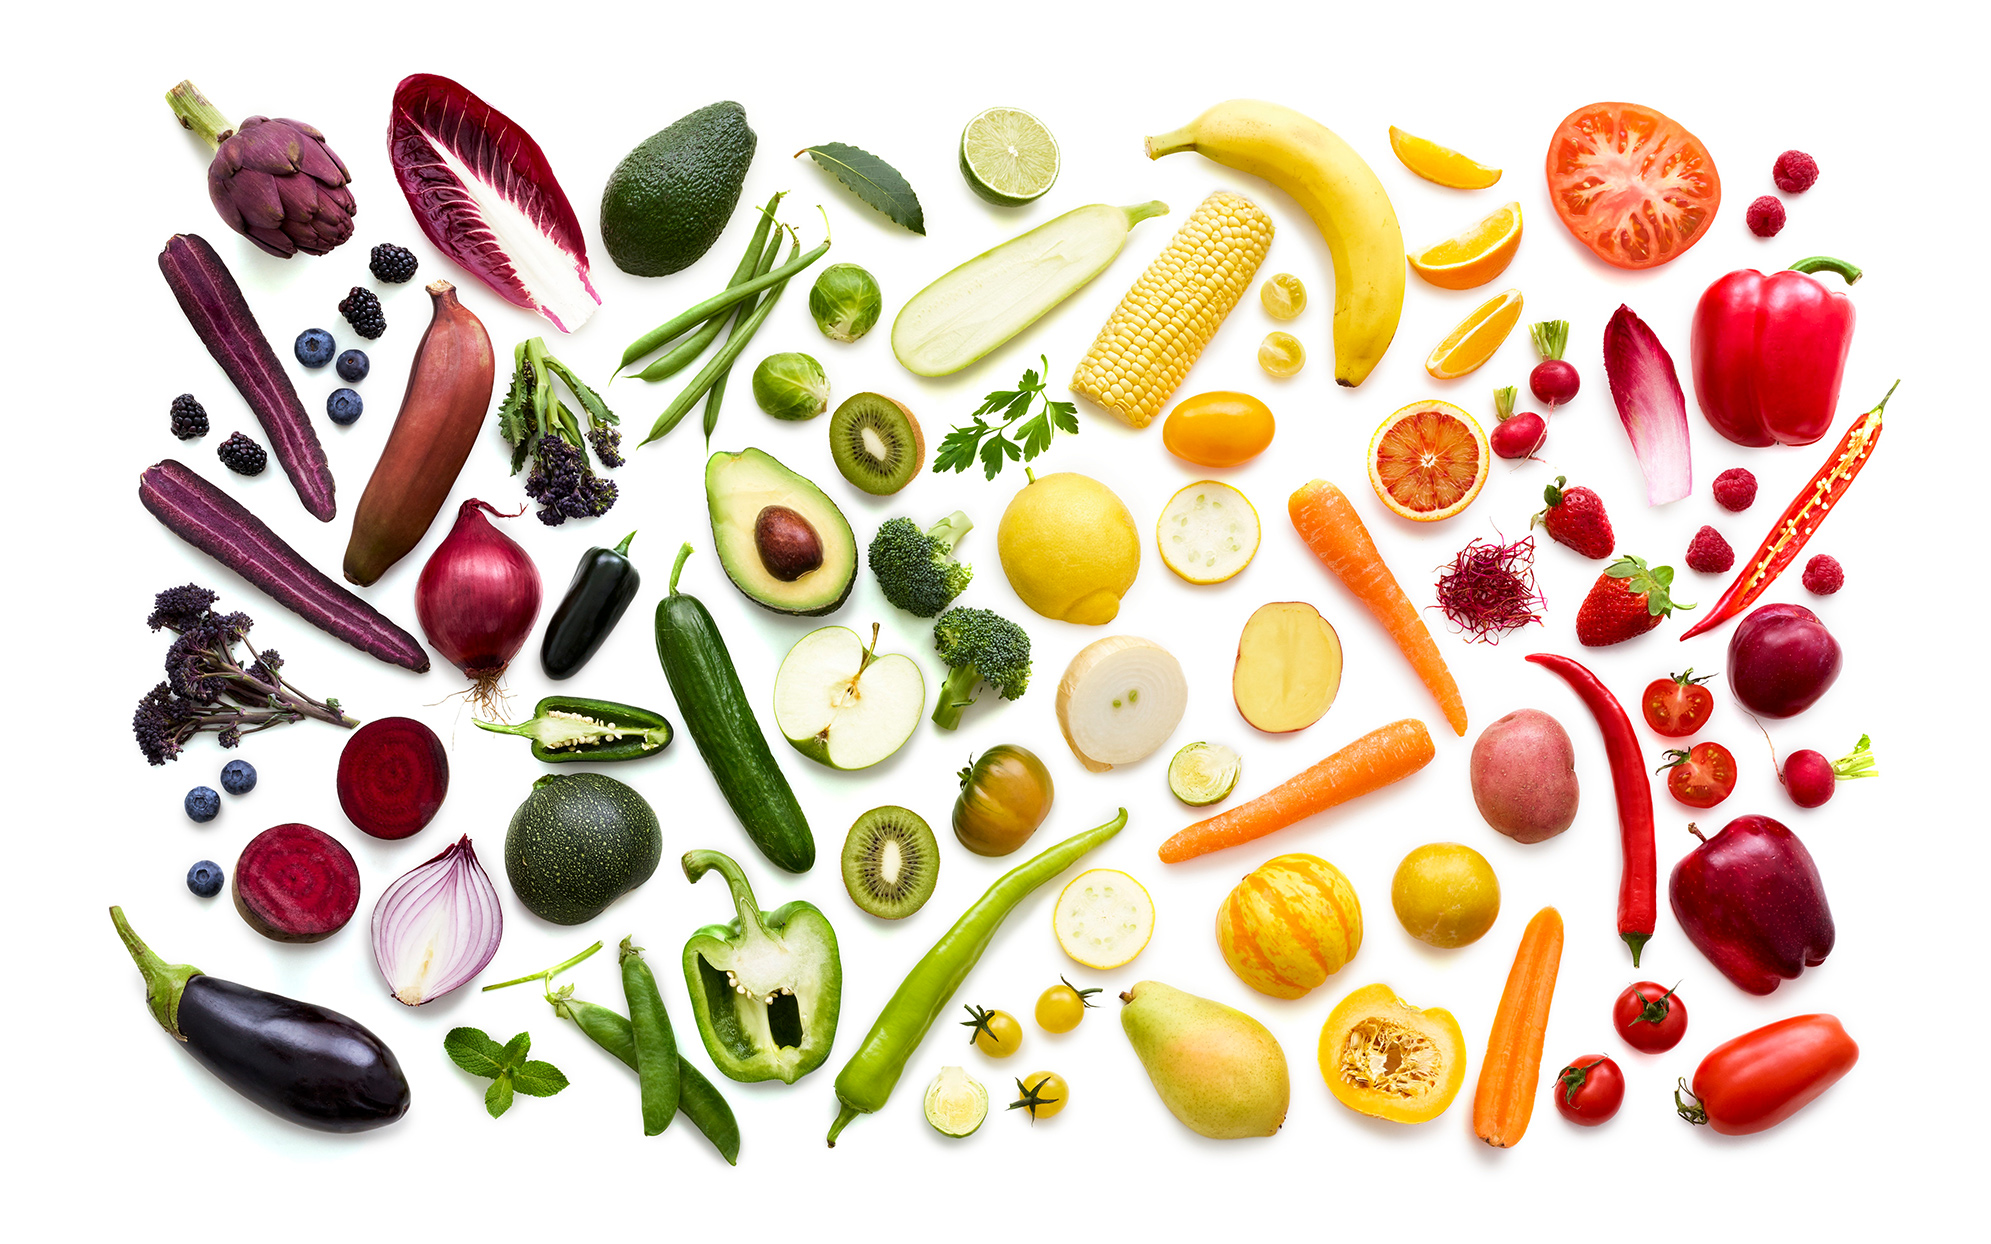 colorful vegetables against white background